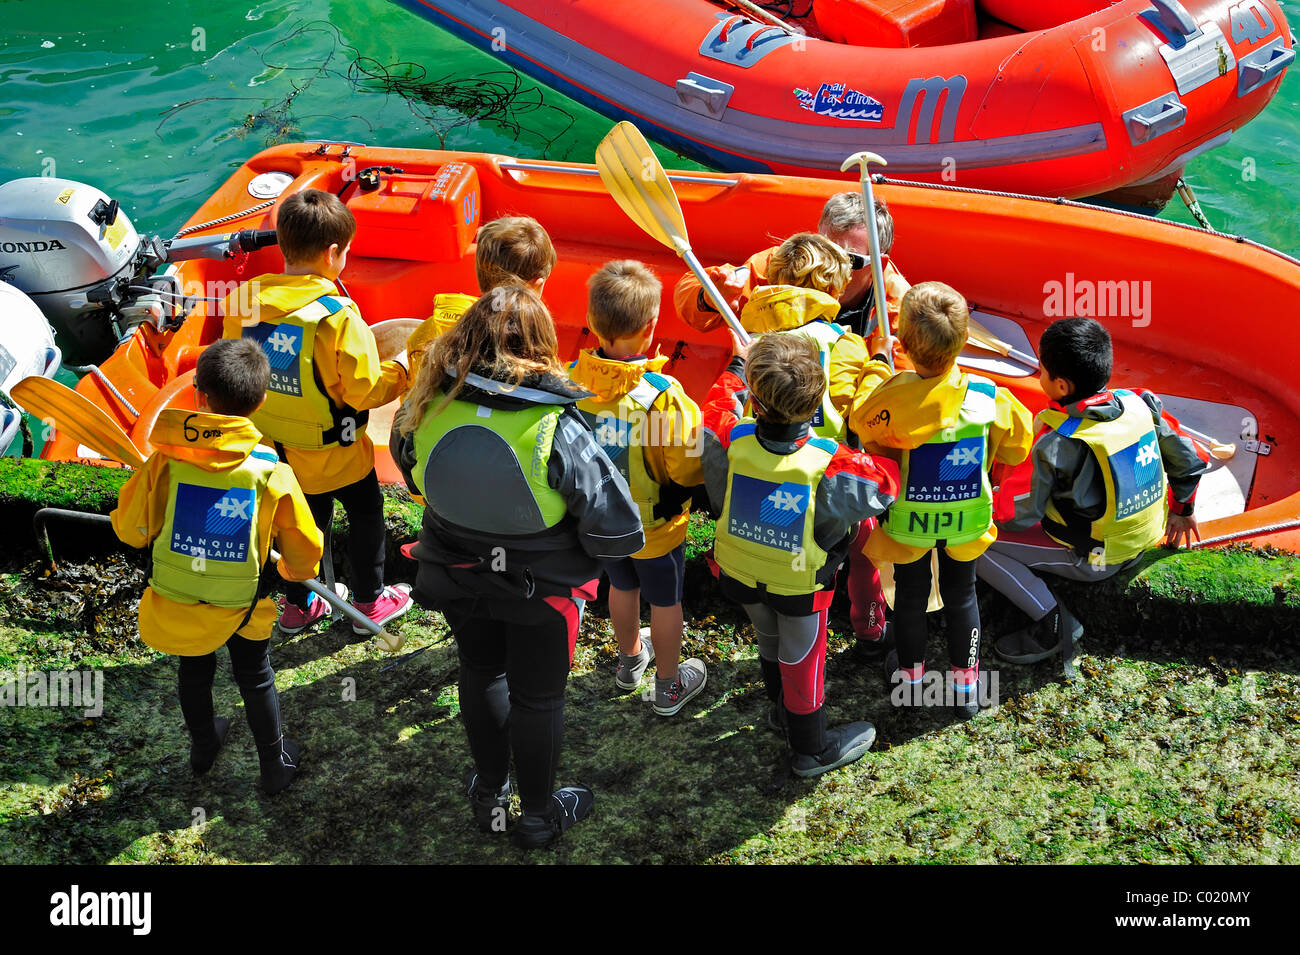 School children with life jackets boarding dinghy during sailing class - Stock Image